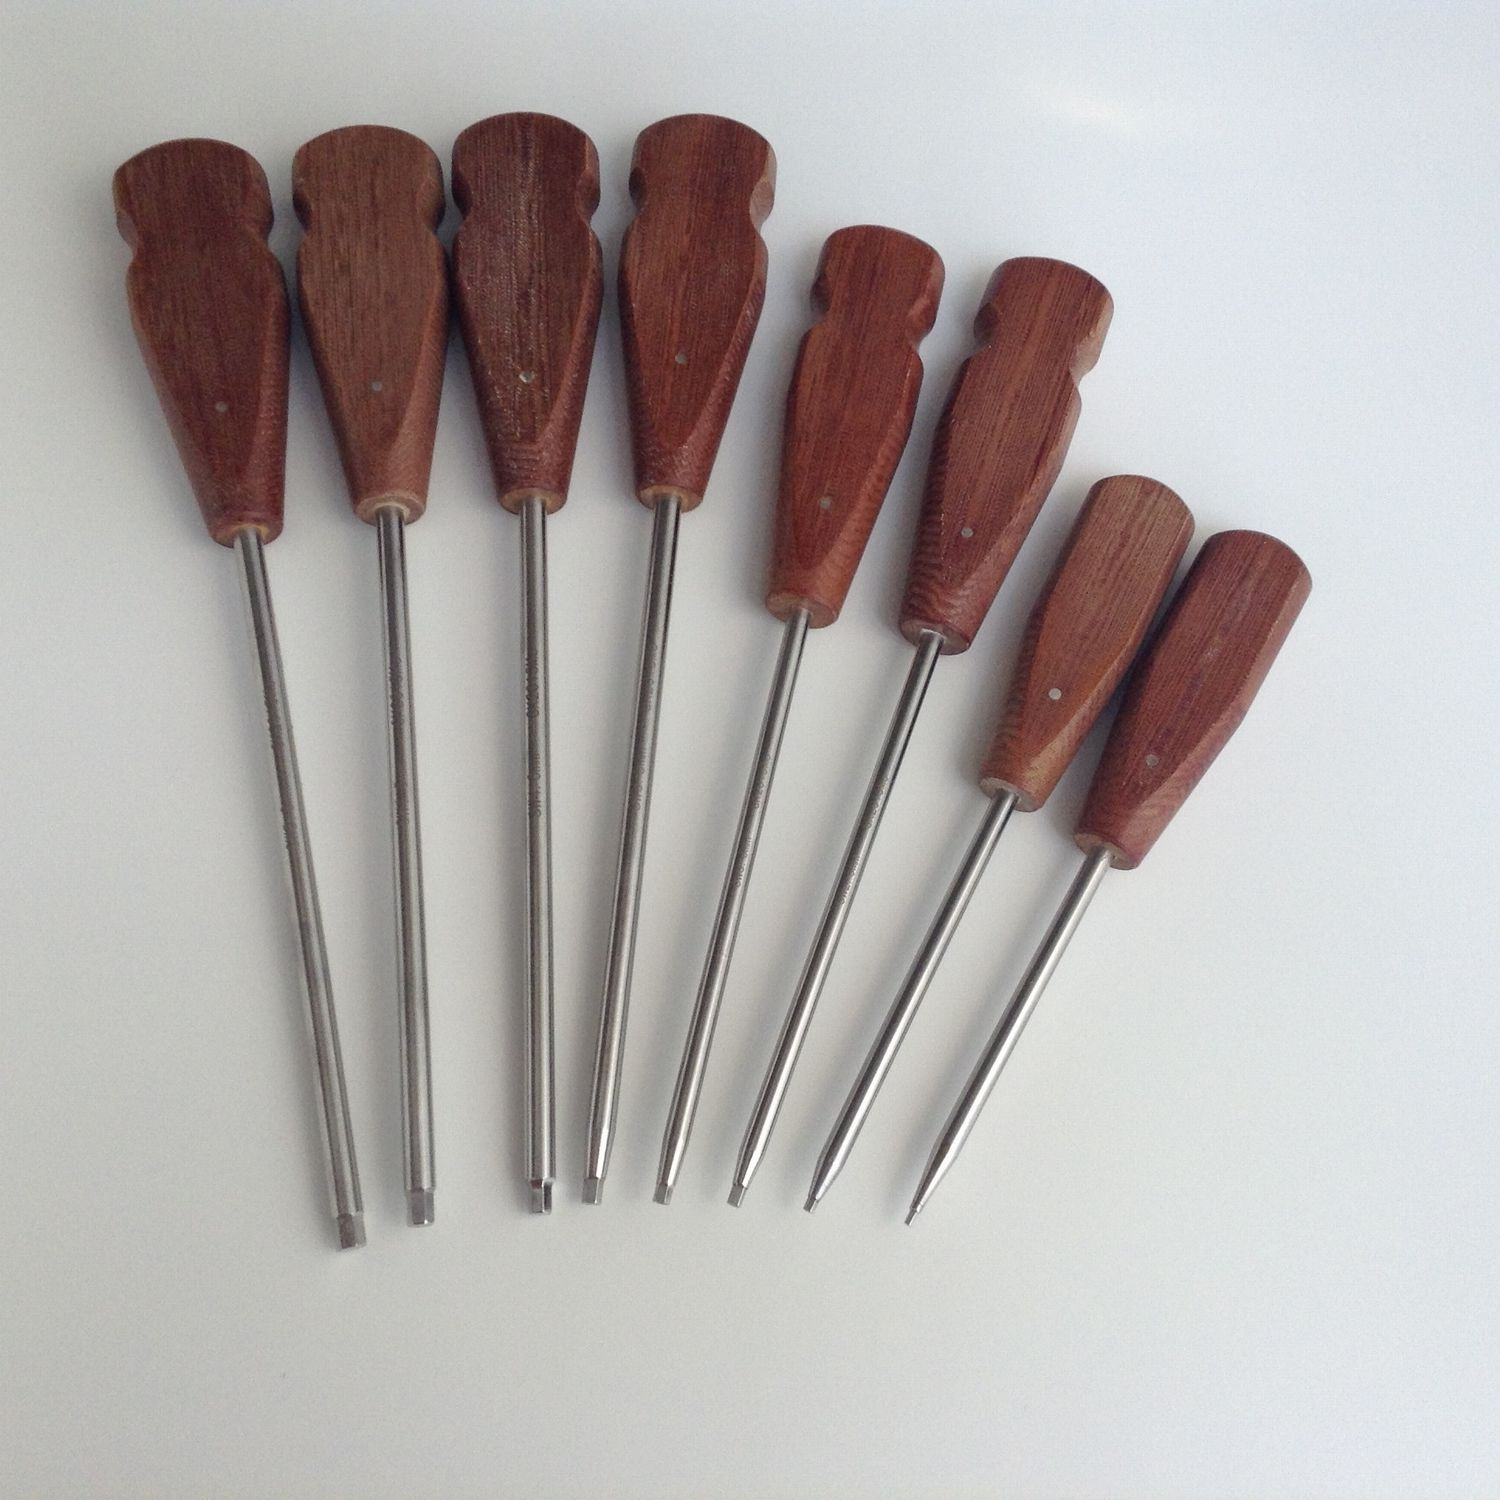 A set of 8 pcs Bone Screwdriver Hex Head Veterinary orthopedics Instruments prediction of bone length from bone fragments